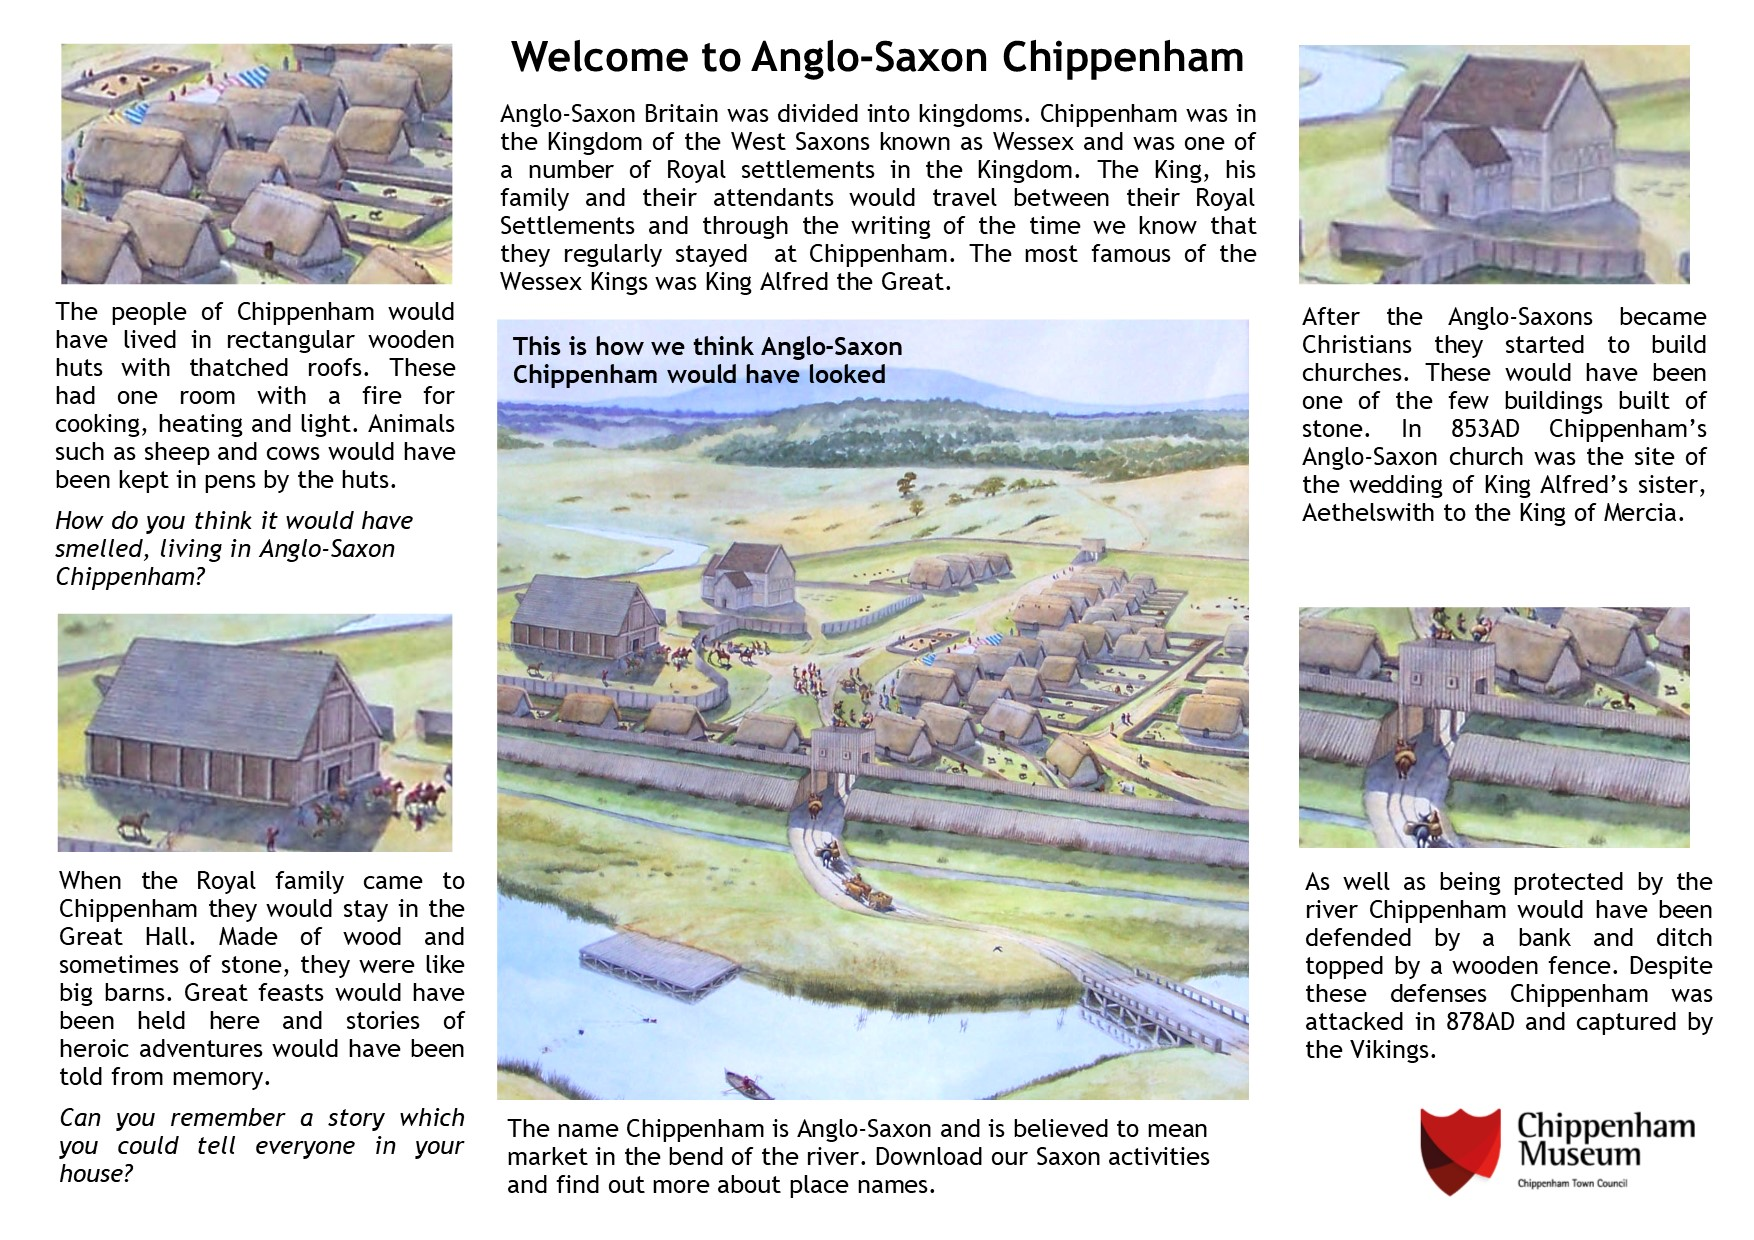 Welcome to Anglo-Saxon Chippenham information Sheet